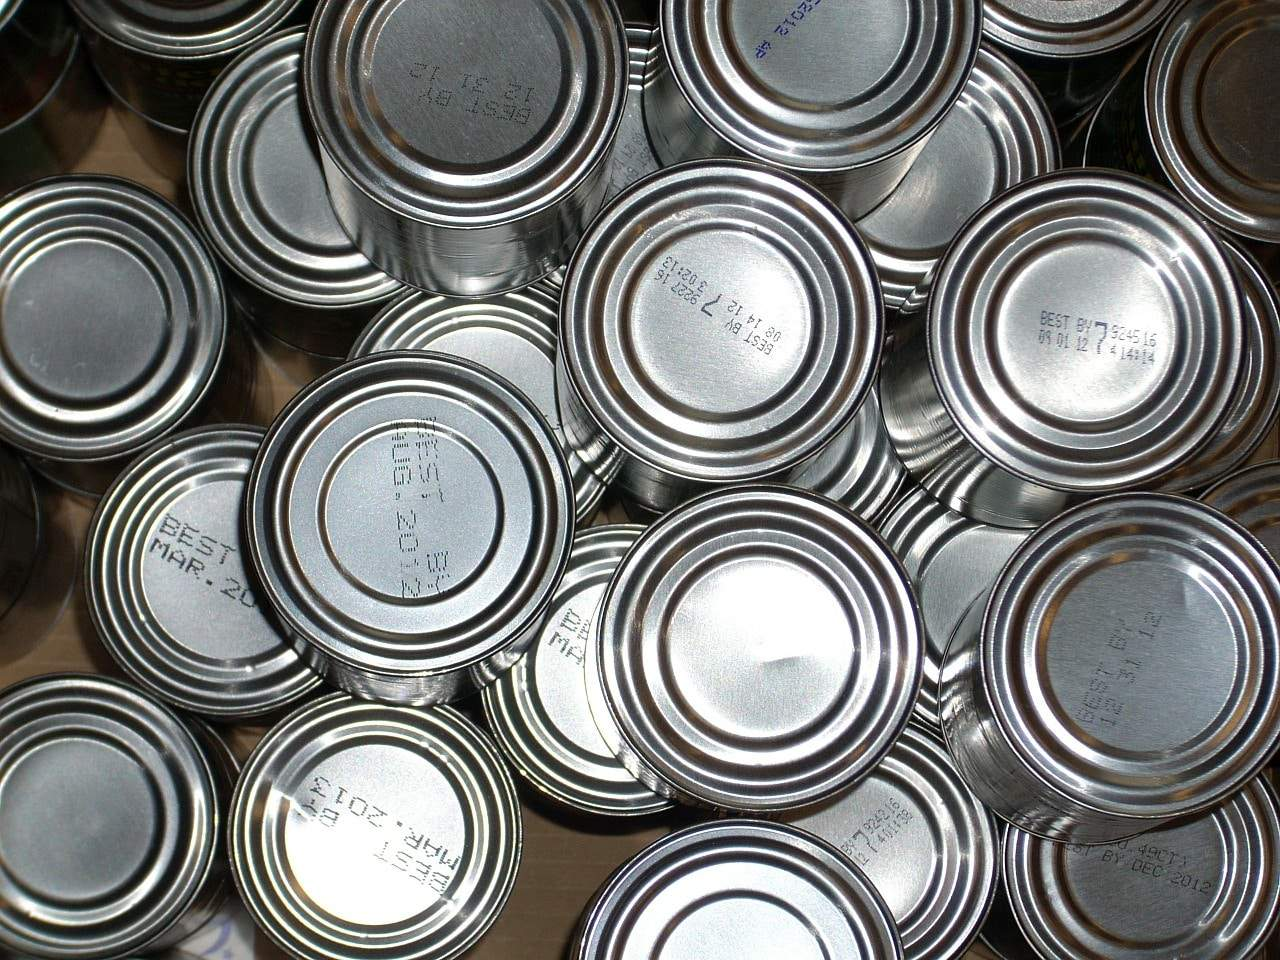 top view of several #10 cans